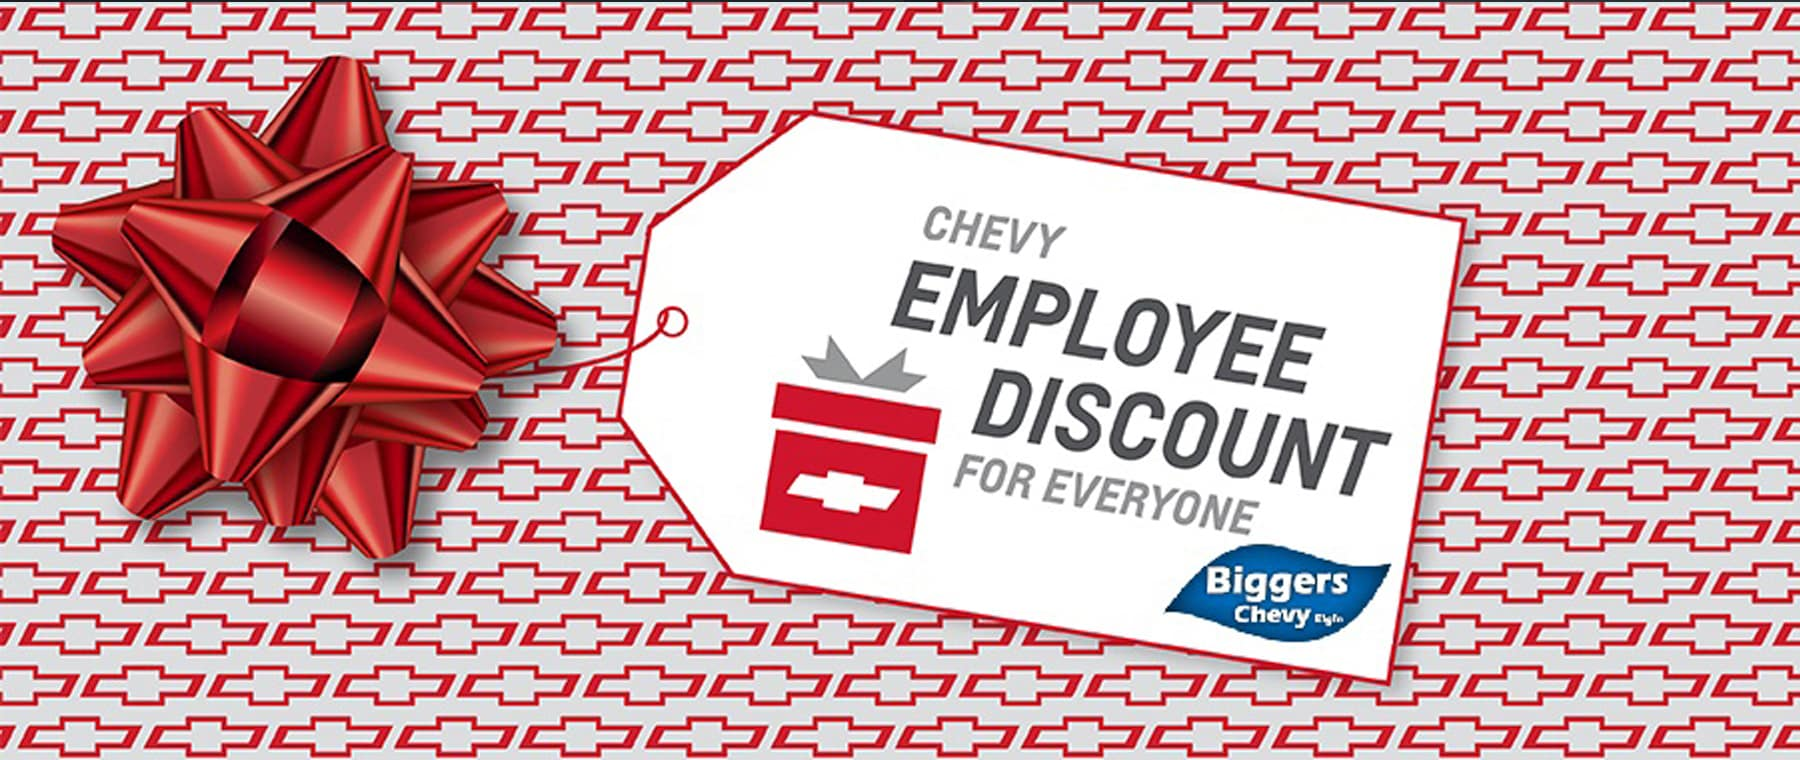 Chevy Employee Discount for all at Biggers Chevy